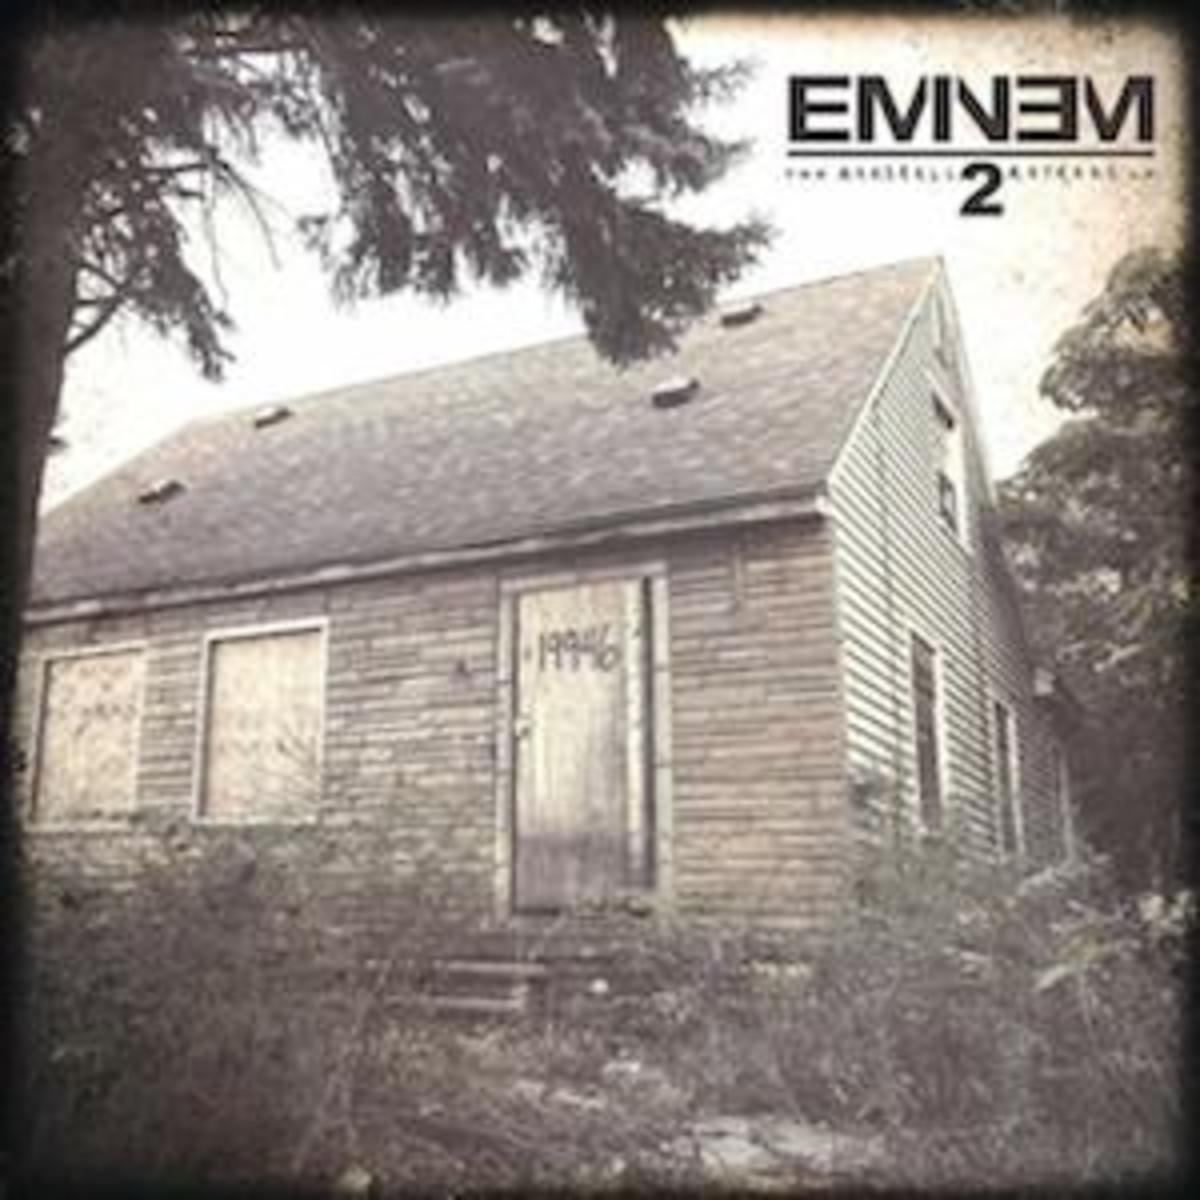 Eminem released his first album in over three years in 'Marshall Mathers LP2' on Wednesday and has already been at number one on iTunes and on Billboards Top 100.